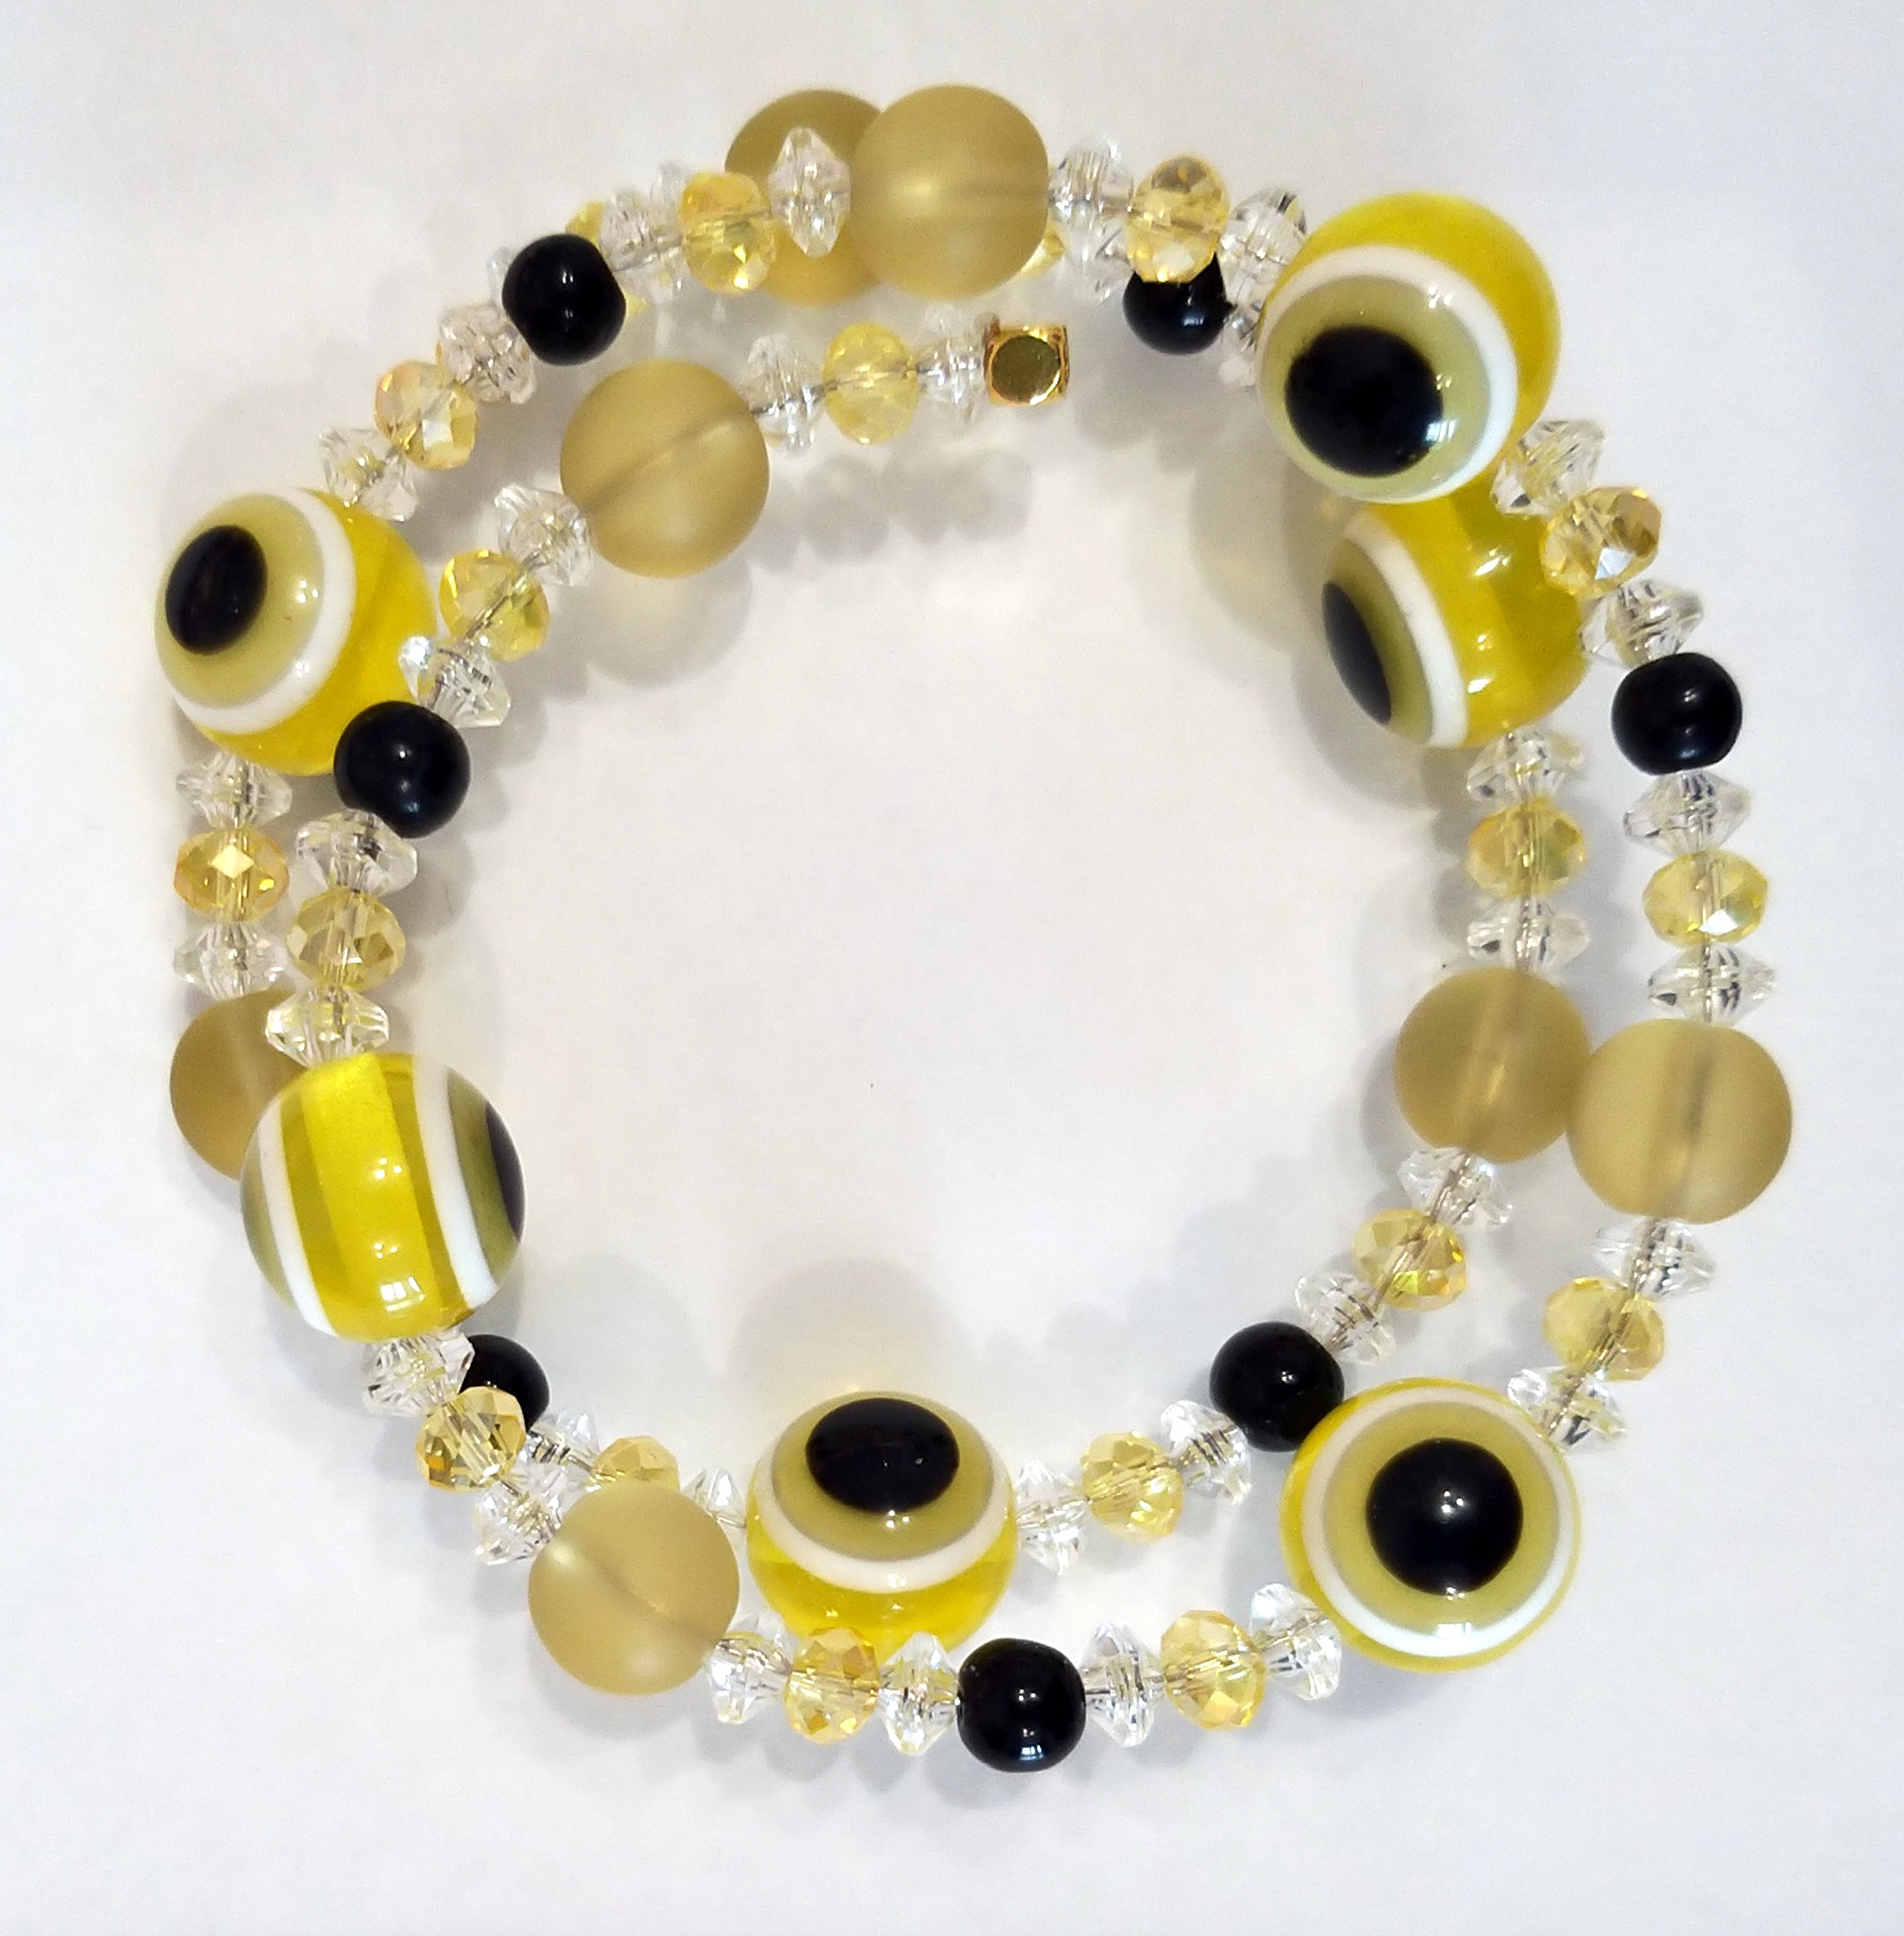 #FP-BN 190817  bracelet or NECKLACE   Suggested $25 usd - 2 EA. IN STOCK